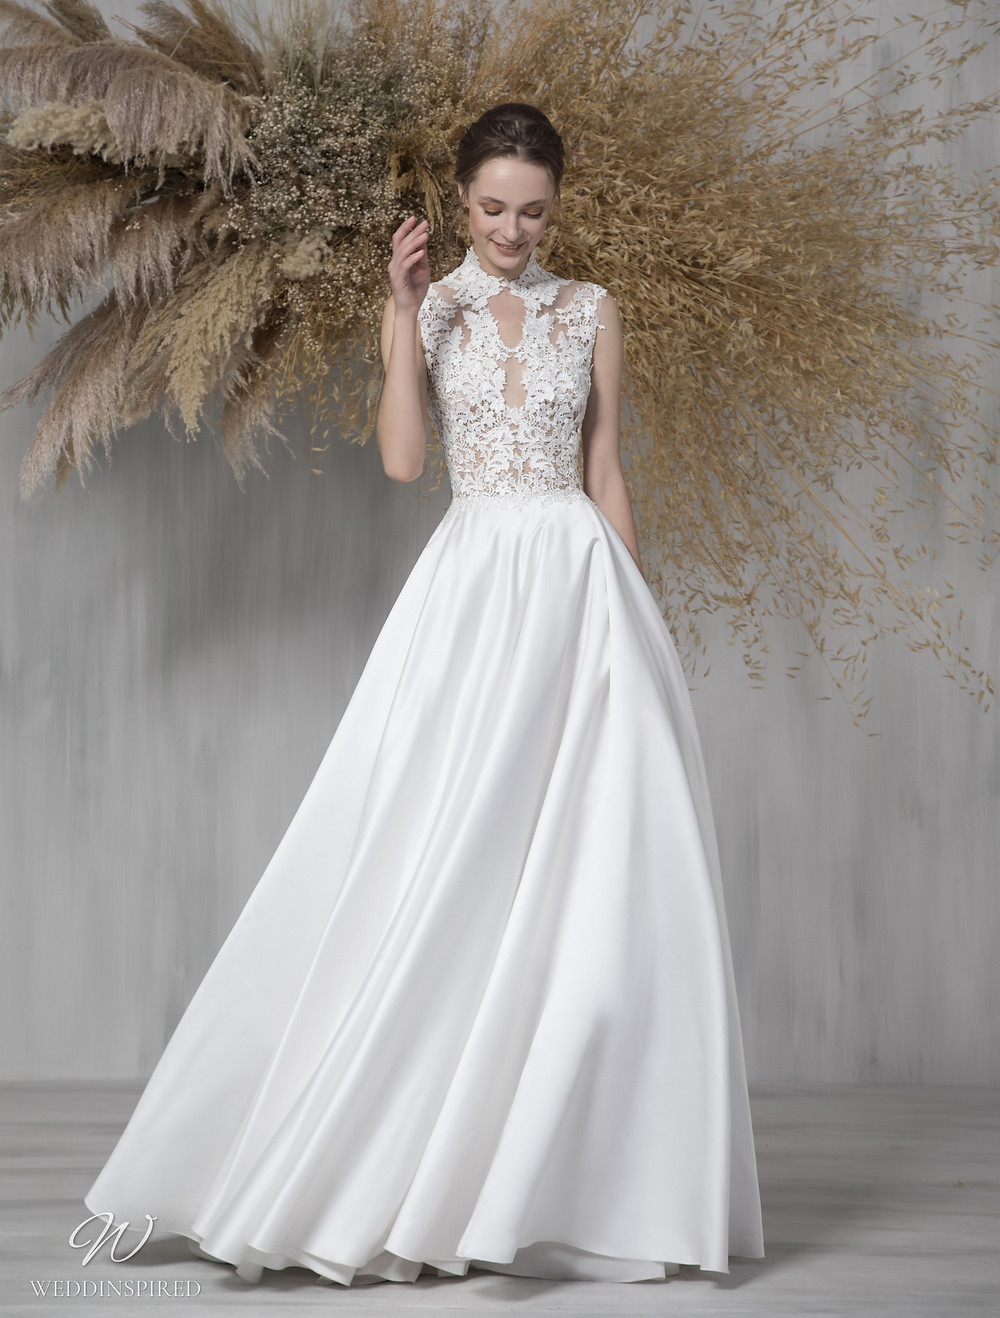 A Tony Ward 2021 lace and satin A-line wedding dress with a collar and a high neckline